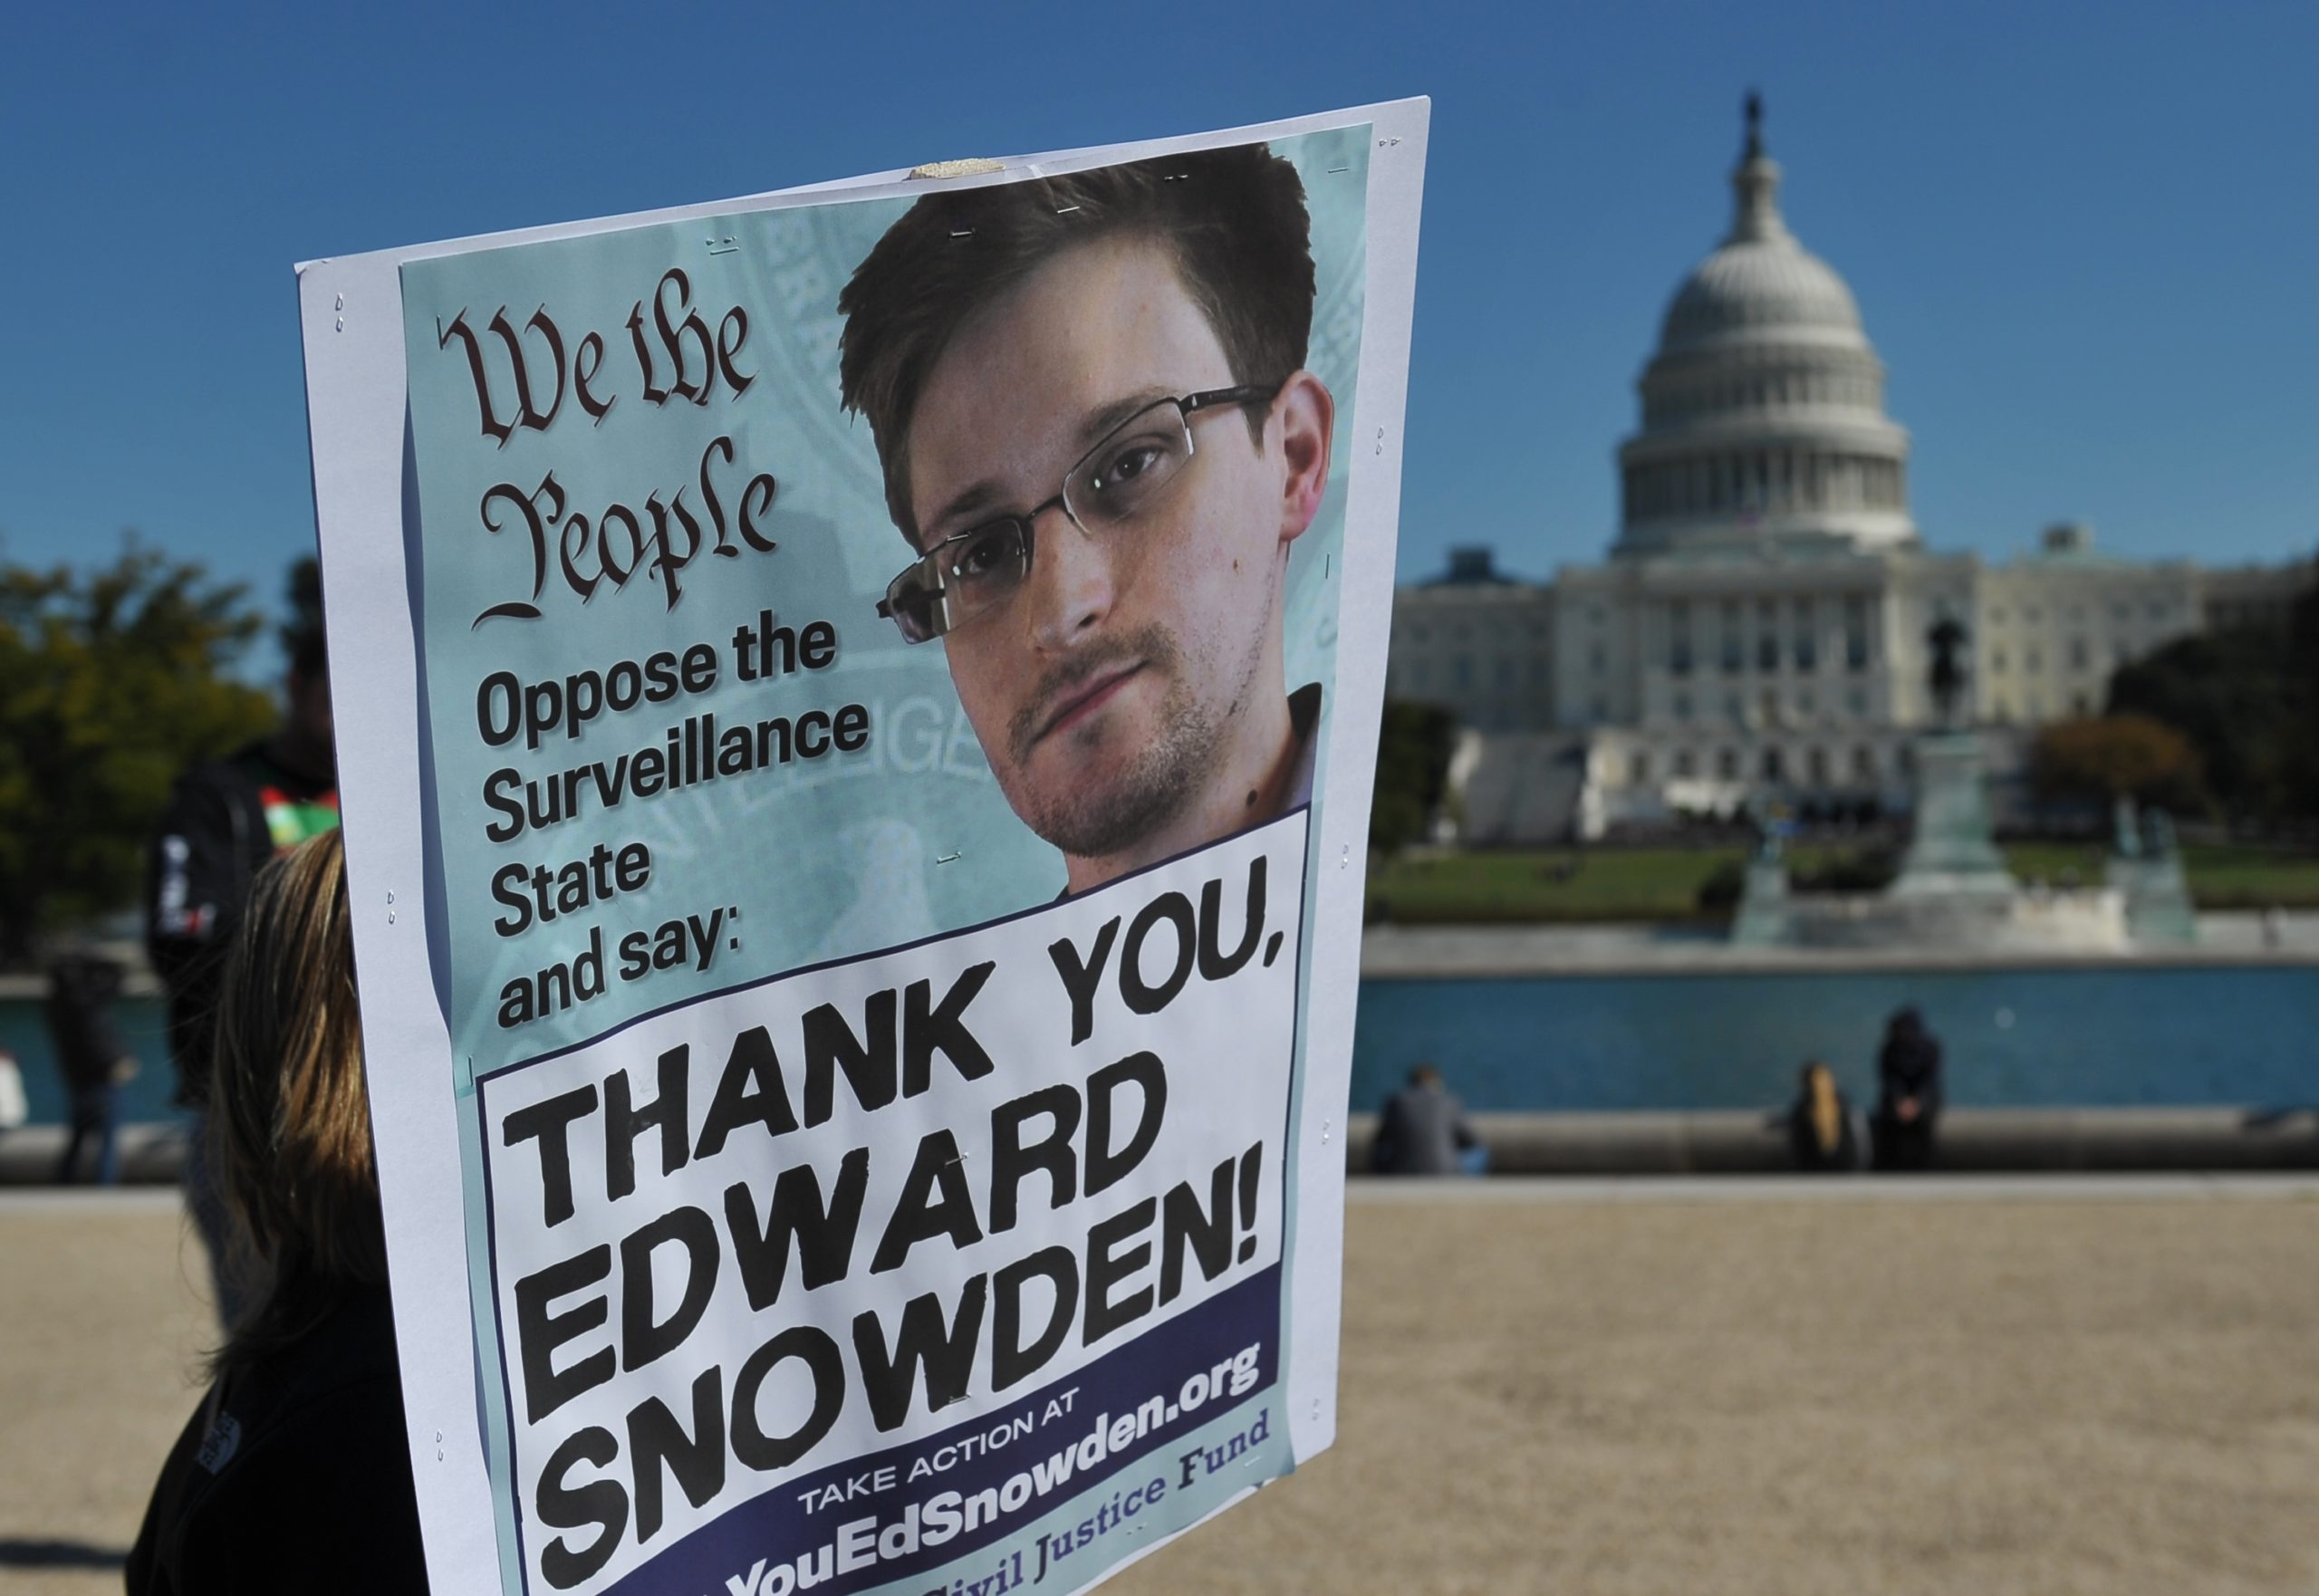 Demonstrators hold placards supporting former US intelligence analyst Edward Snowden during a protest against government surveillance on October 26, 2013 in Washington, DC. (MANDEL NGAN/AFP via Getty Images)